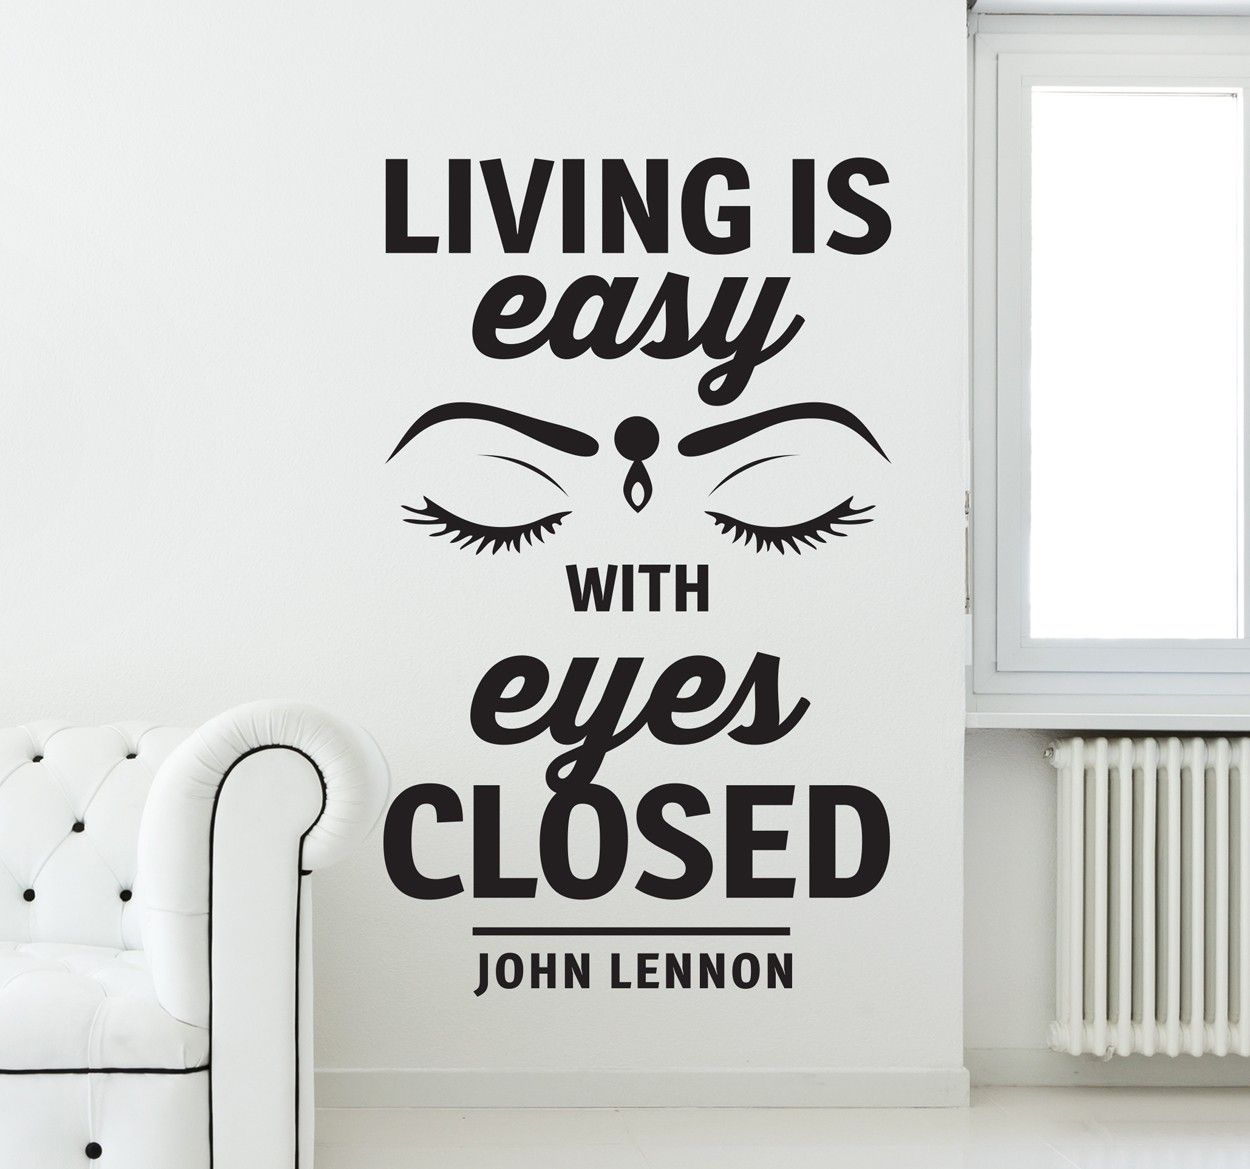 Find your personal qoute here! #text #sticker #home #decor #wall #art éyes #johnlennon #decoration #DIY #quote